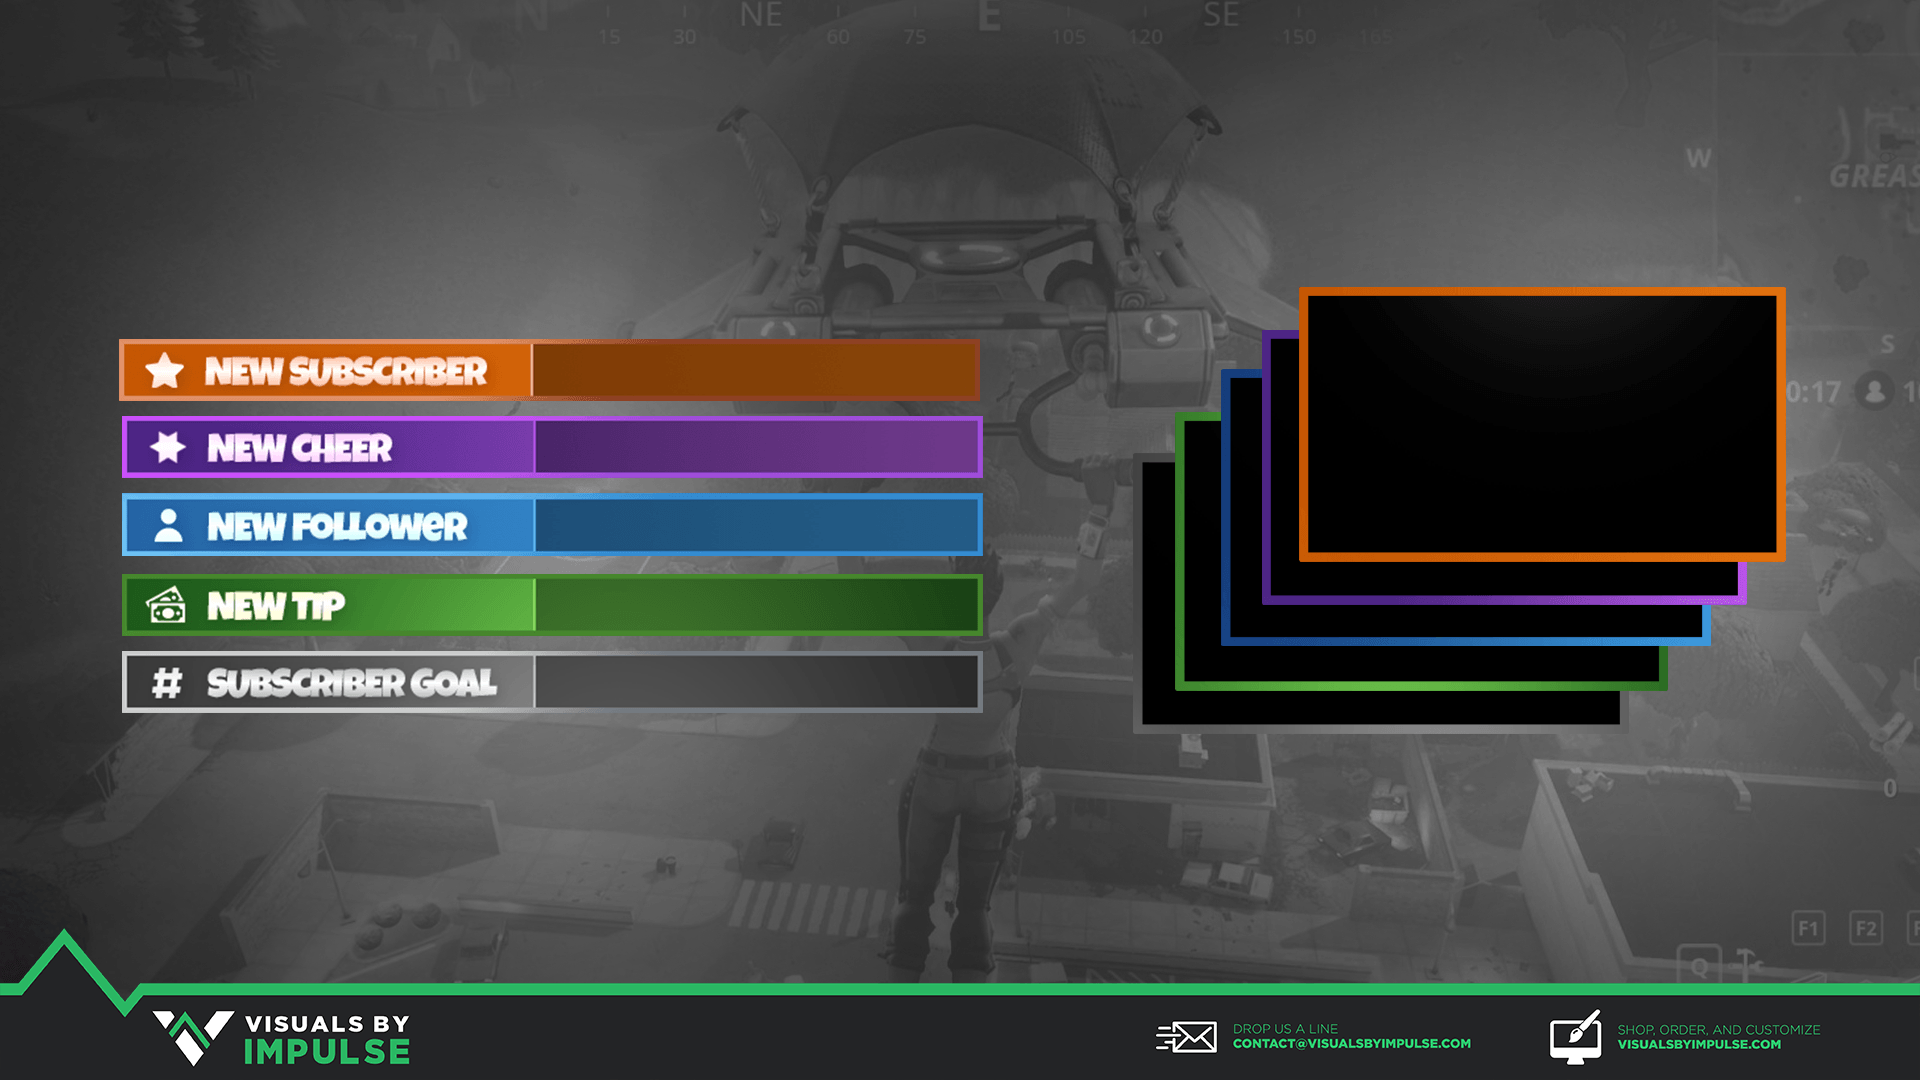 Animated Fortnite Stream Package - Visuals by Impulse